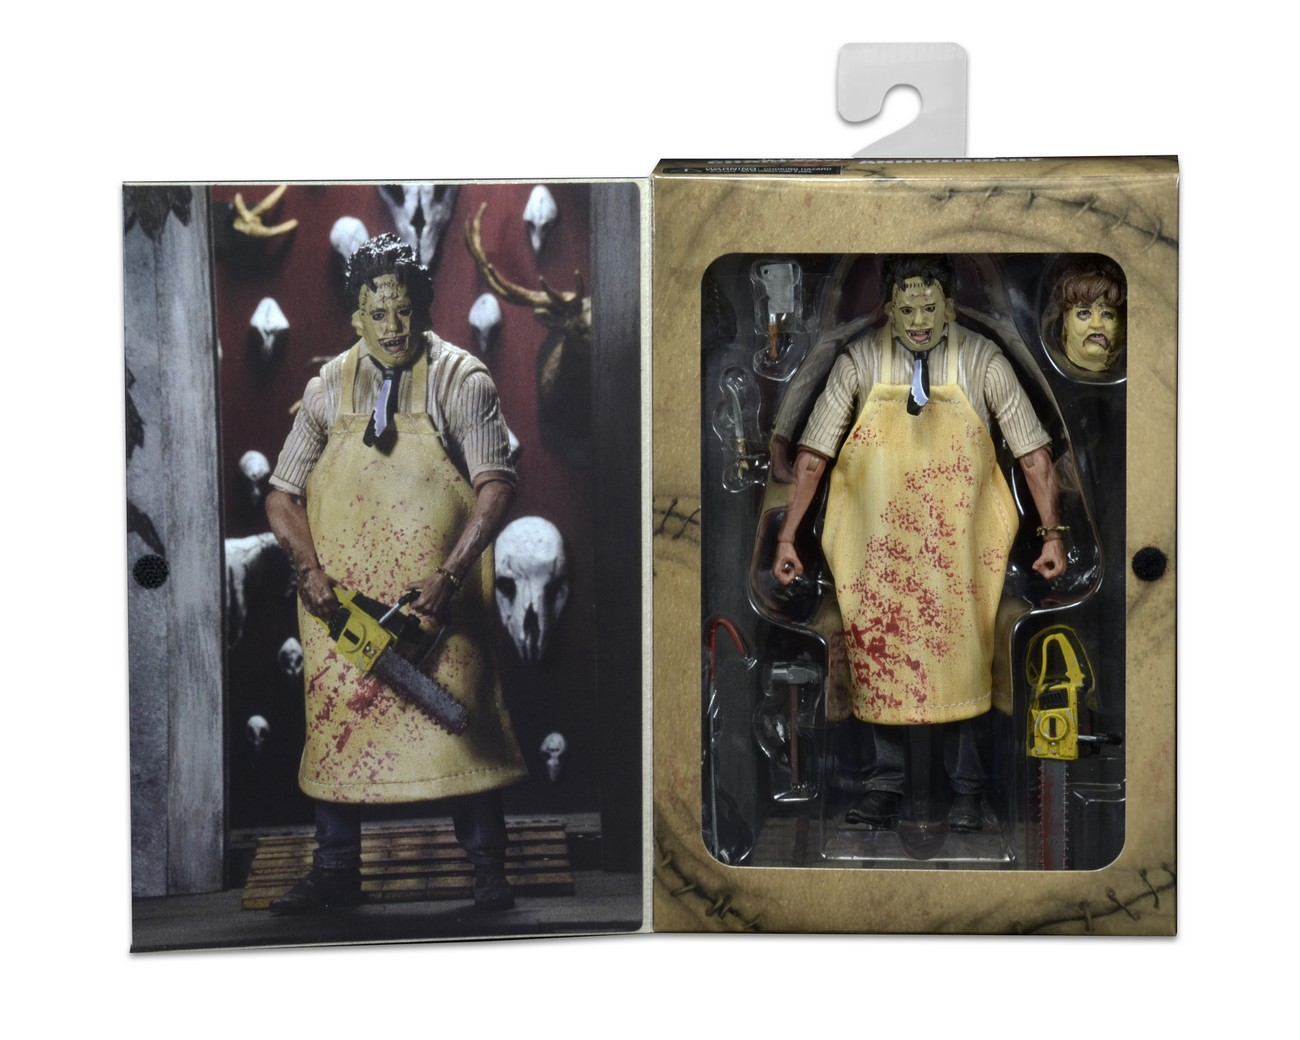 NECA Toys Ultimate Leatherface, Ultimate Michael Myers & Iron Maiden Trooper Return In 2020